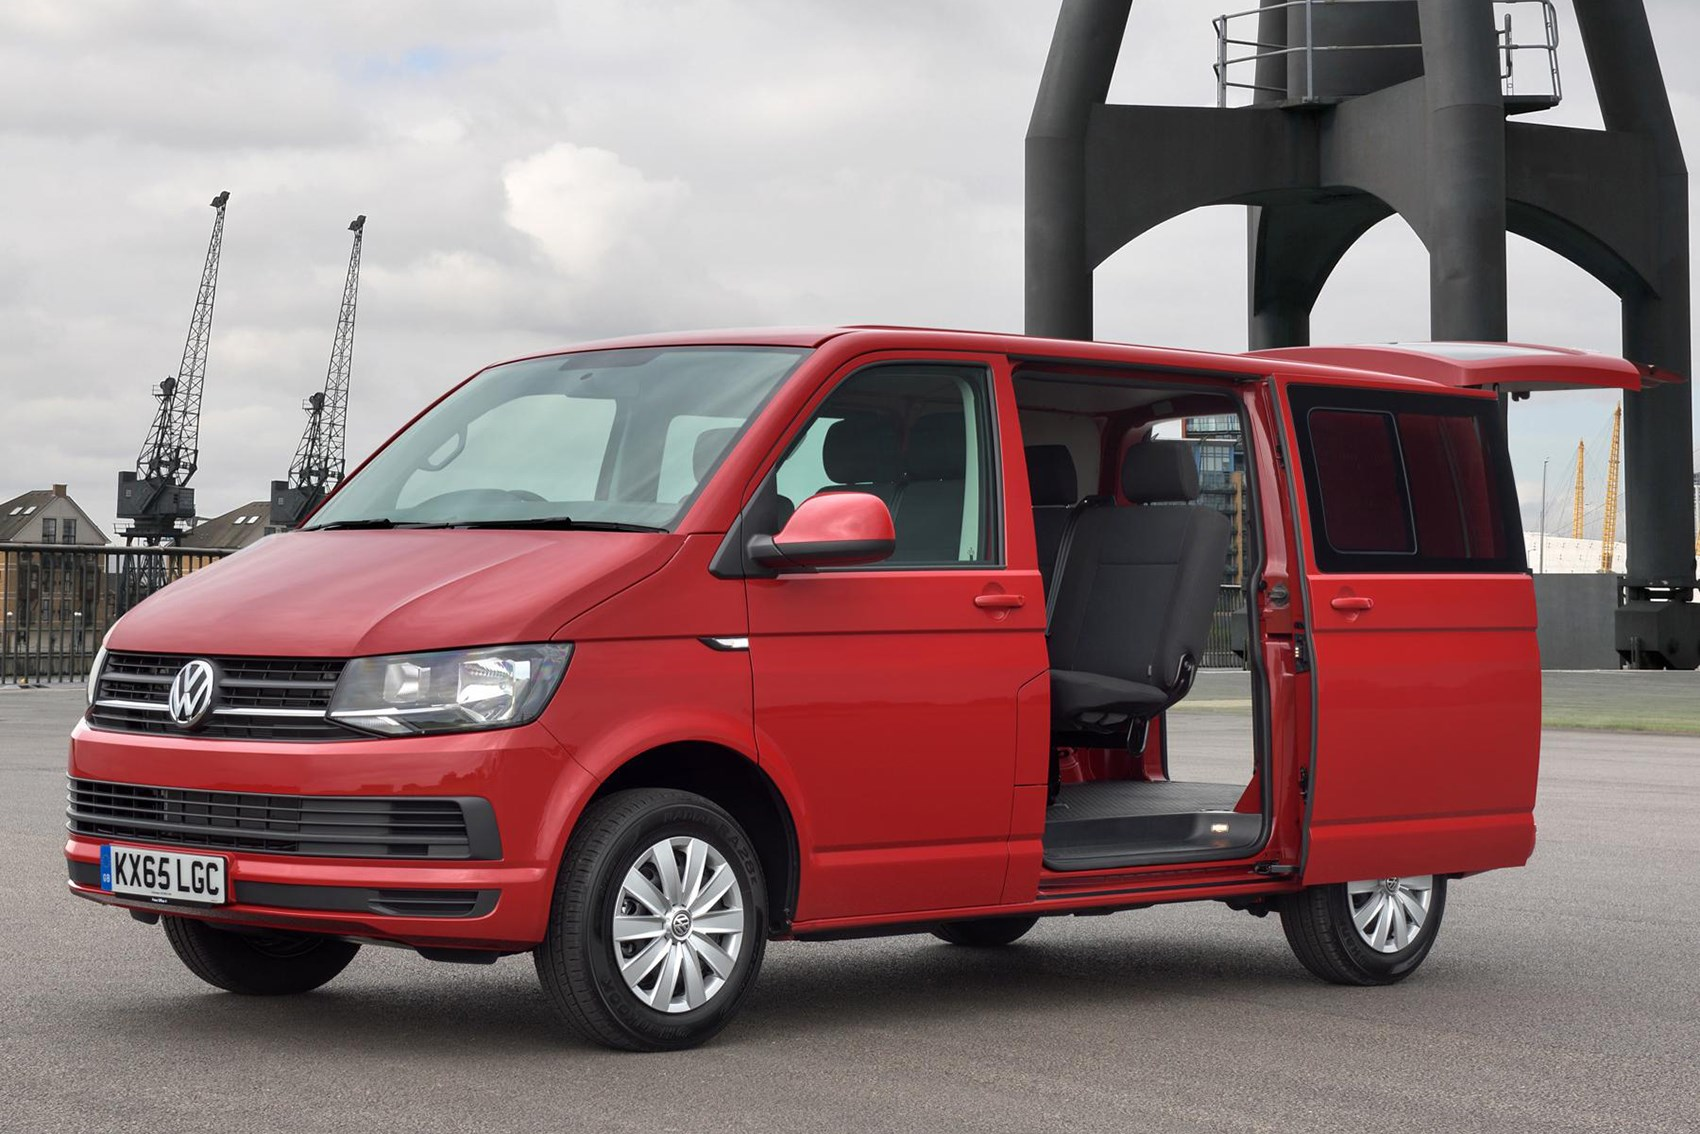 VW Transporter - best vans for fishermen